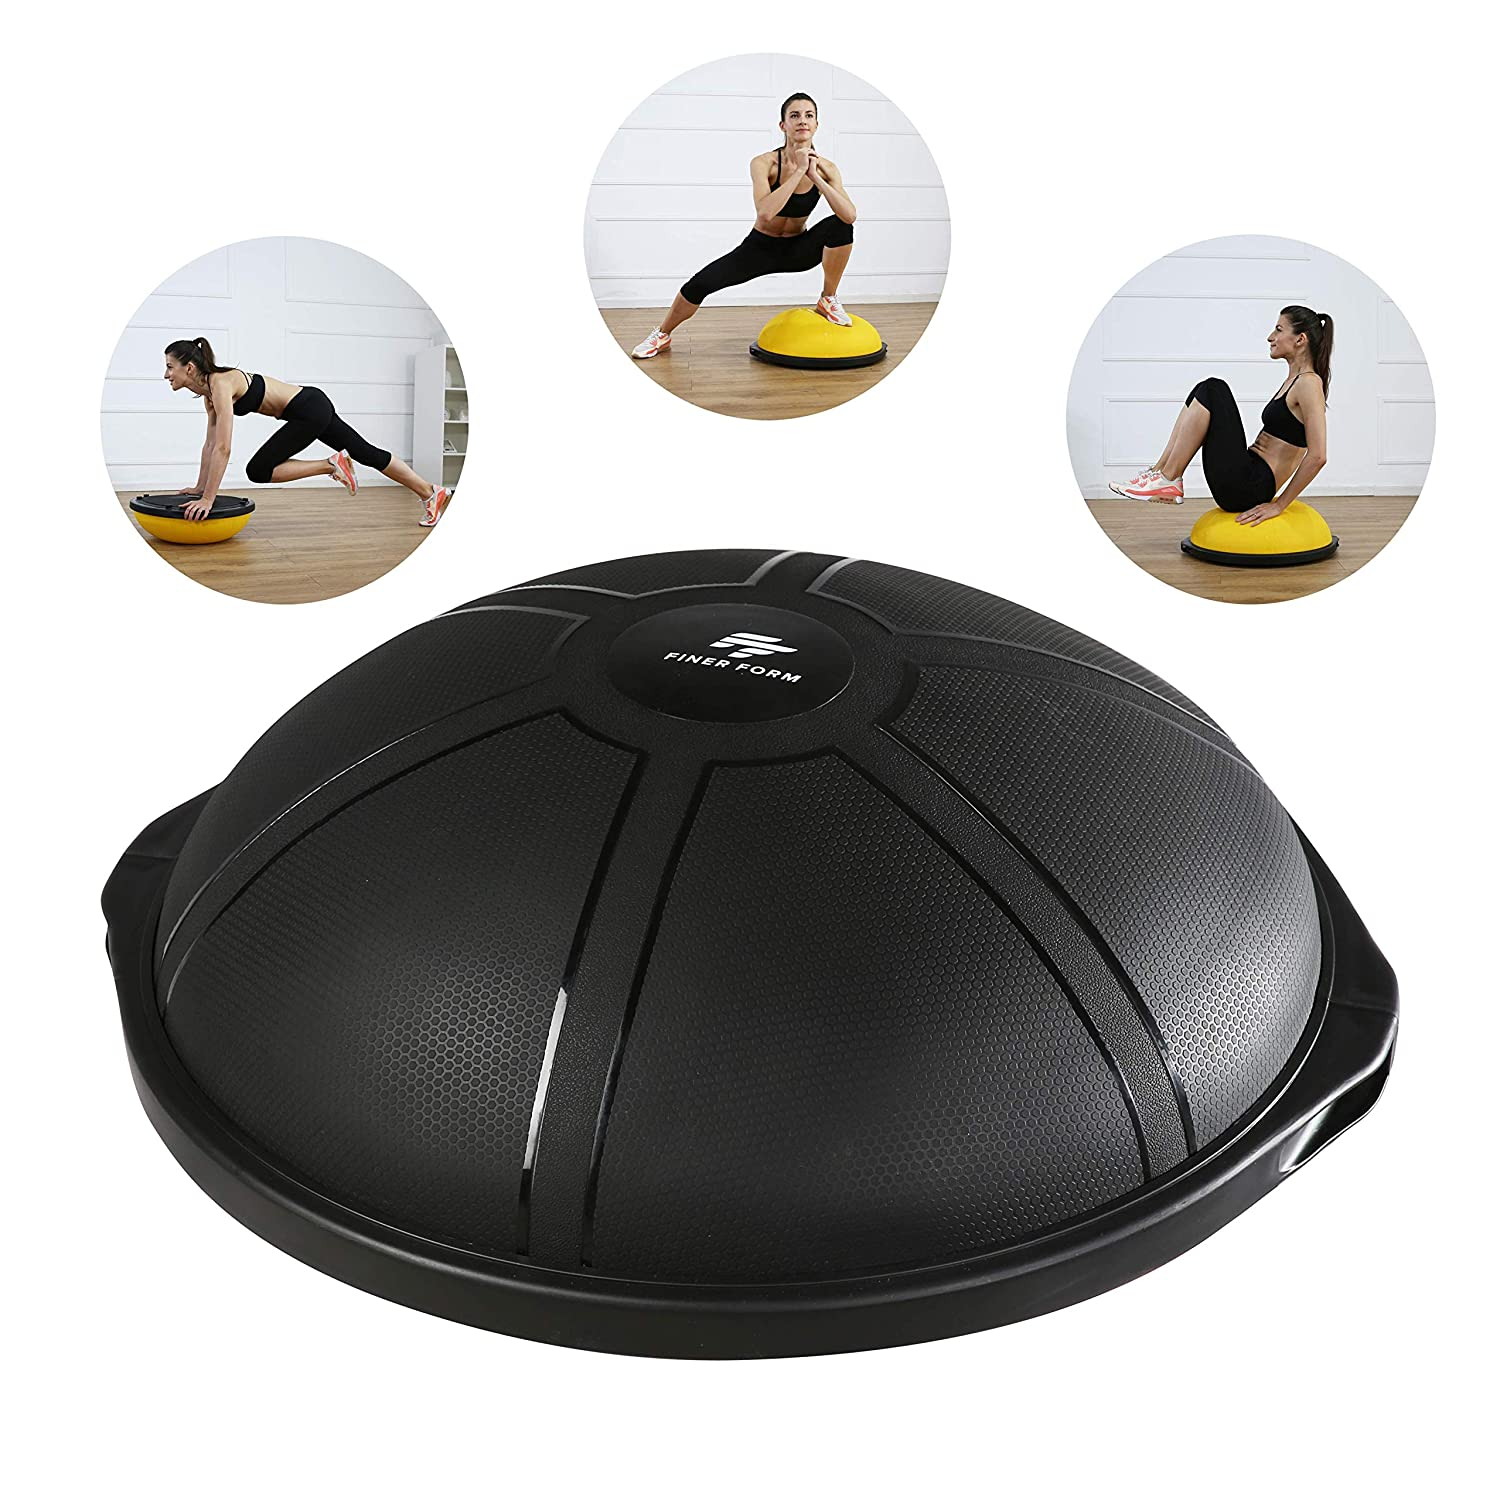 Finer Form Hall Ball Balance Trainer for Home Gym Training, Yoga, Full-Body Workout – 25 64 cm